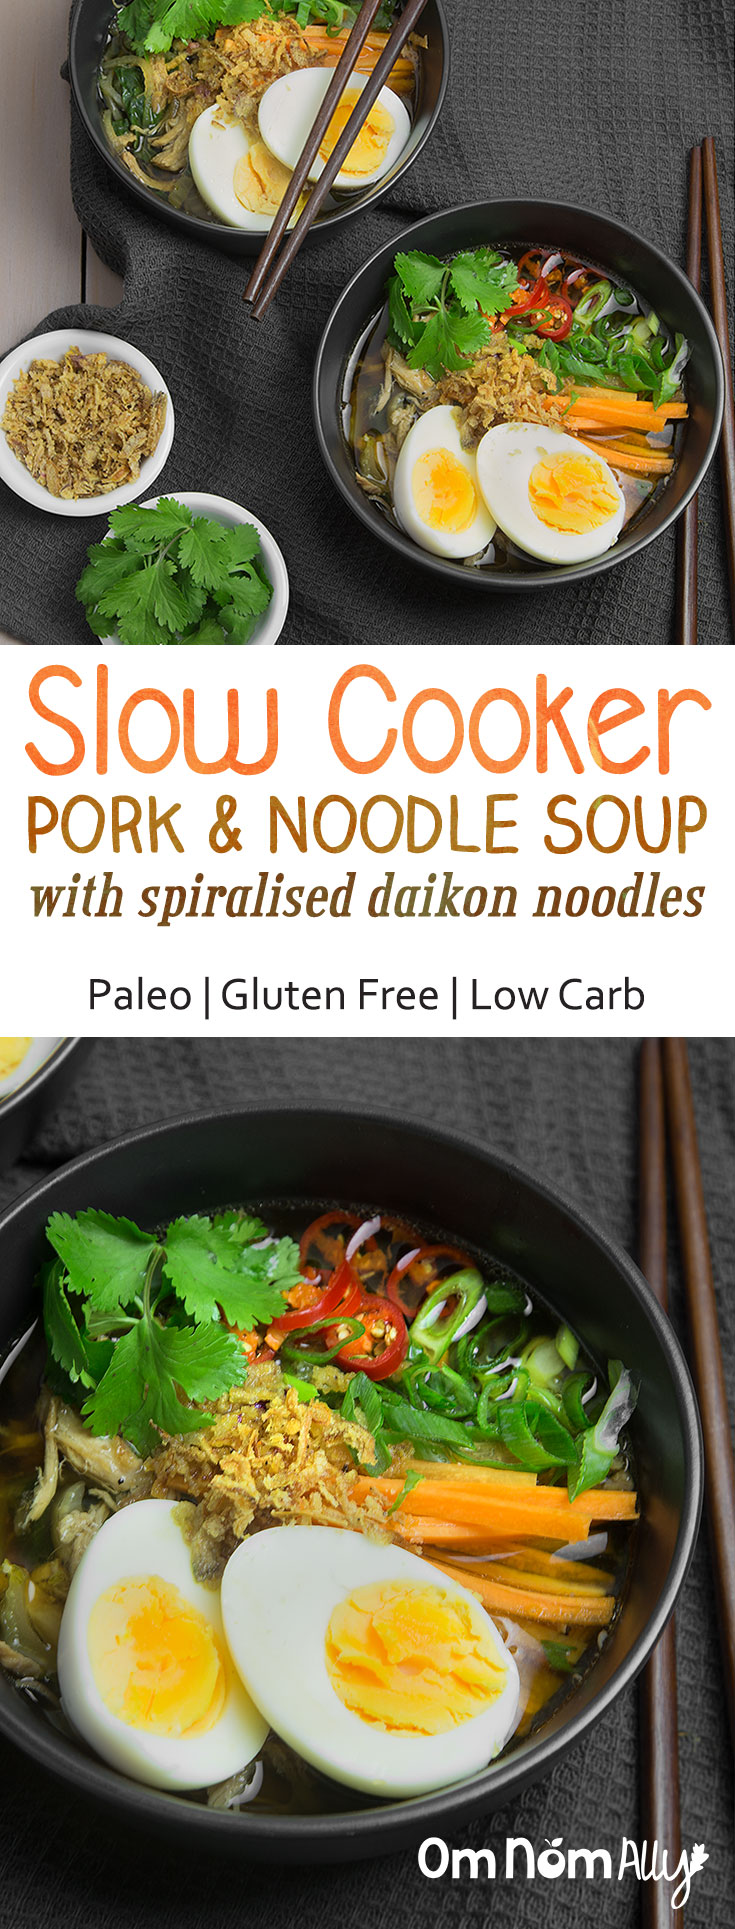 Slow Cooker (Paleo) Pork Noodle Soup with Spiralised Daikon Noodles @OmNomAlly #Glutenfree #Paleo #Low Carb. This slow cooker soup pork and noodle is a joy to come home too after a long day and a pleasure to eat due to it's slippery, gelatinous mouth-feel and aromatic spices